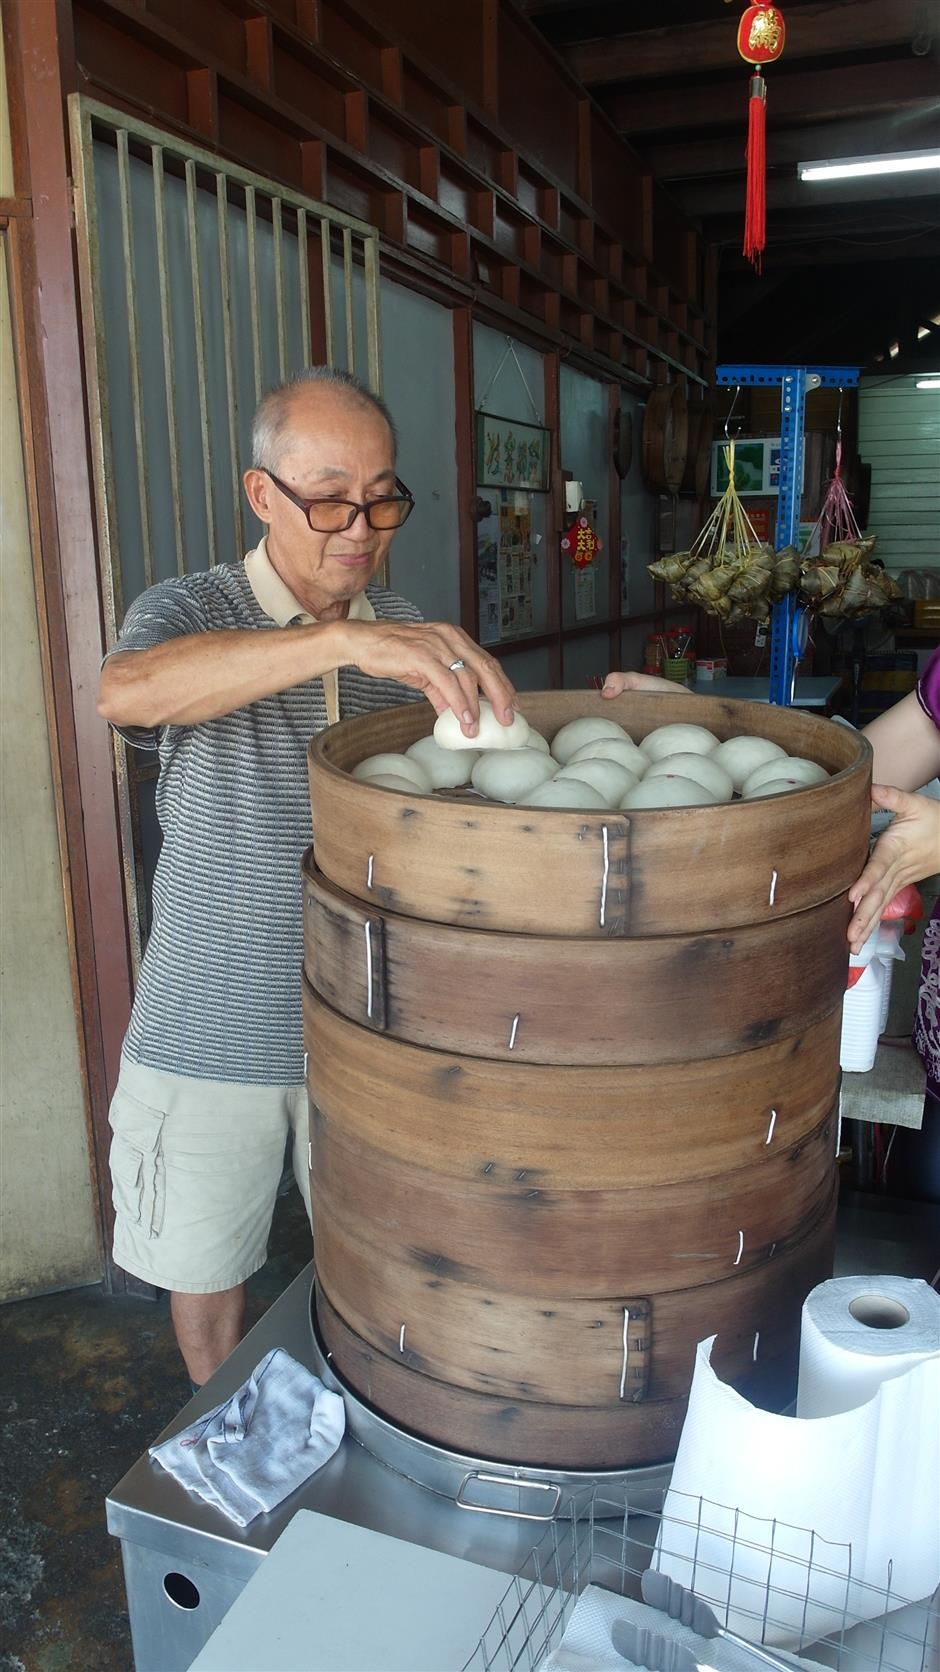 73-year-old Dengkil New Village resident Kiew Wun Fui and his handmade buns which are sold at Hung Cheong Chun coffeeshop.